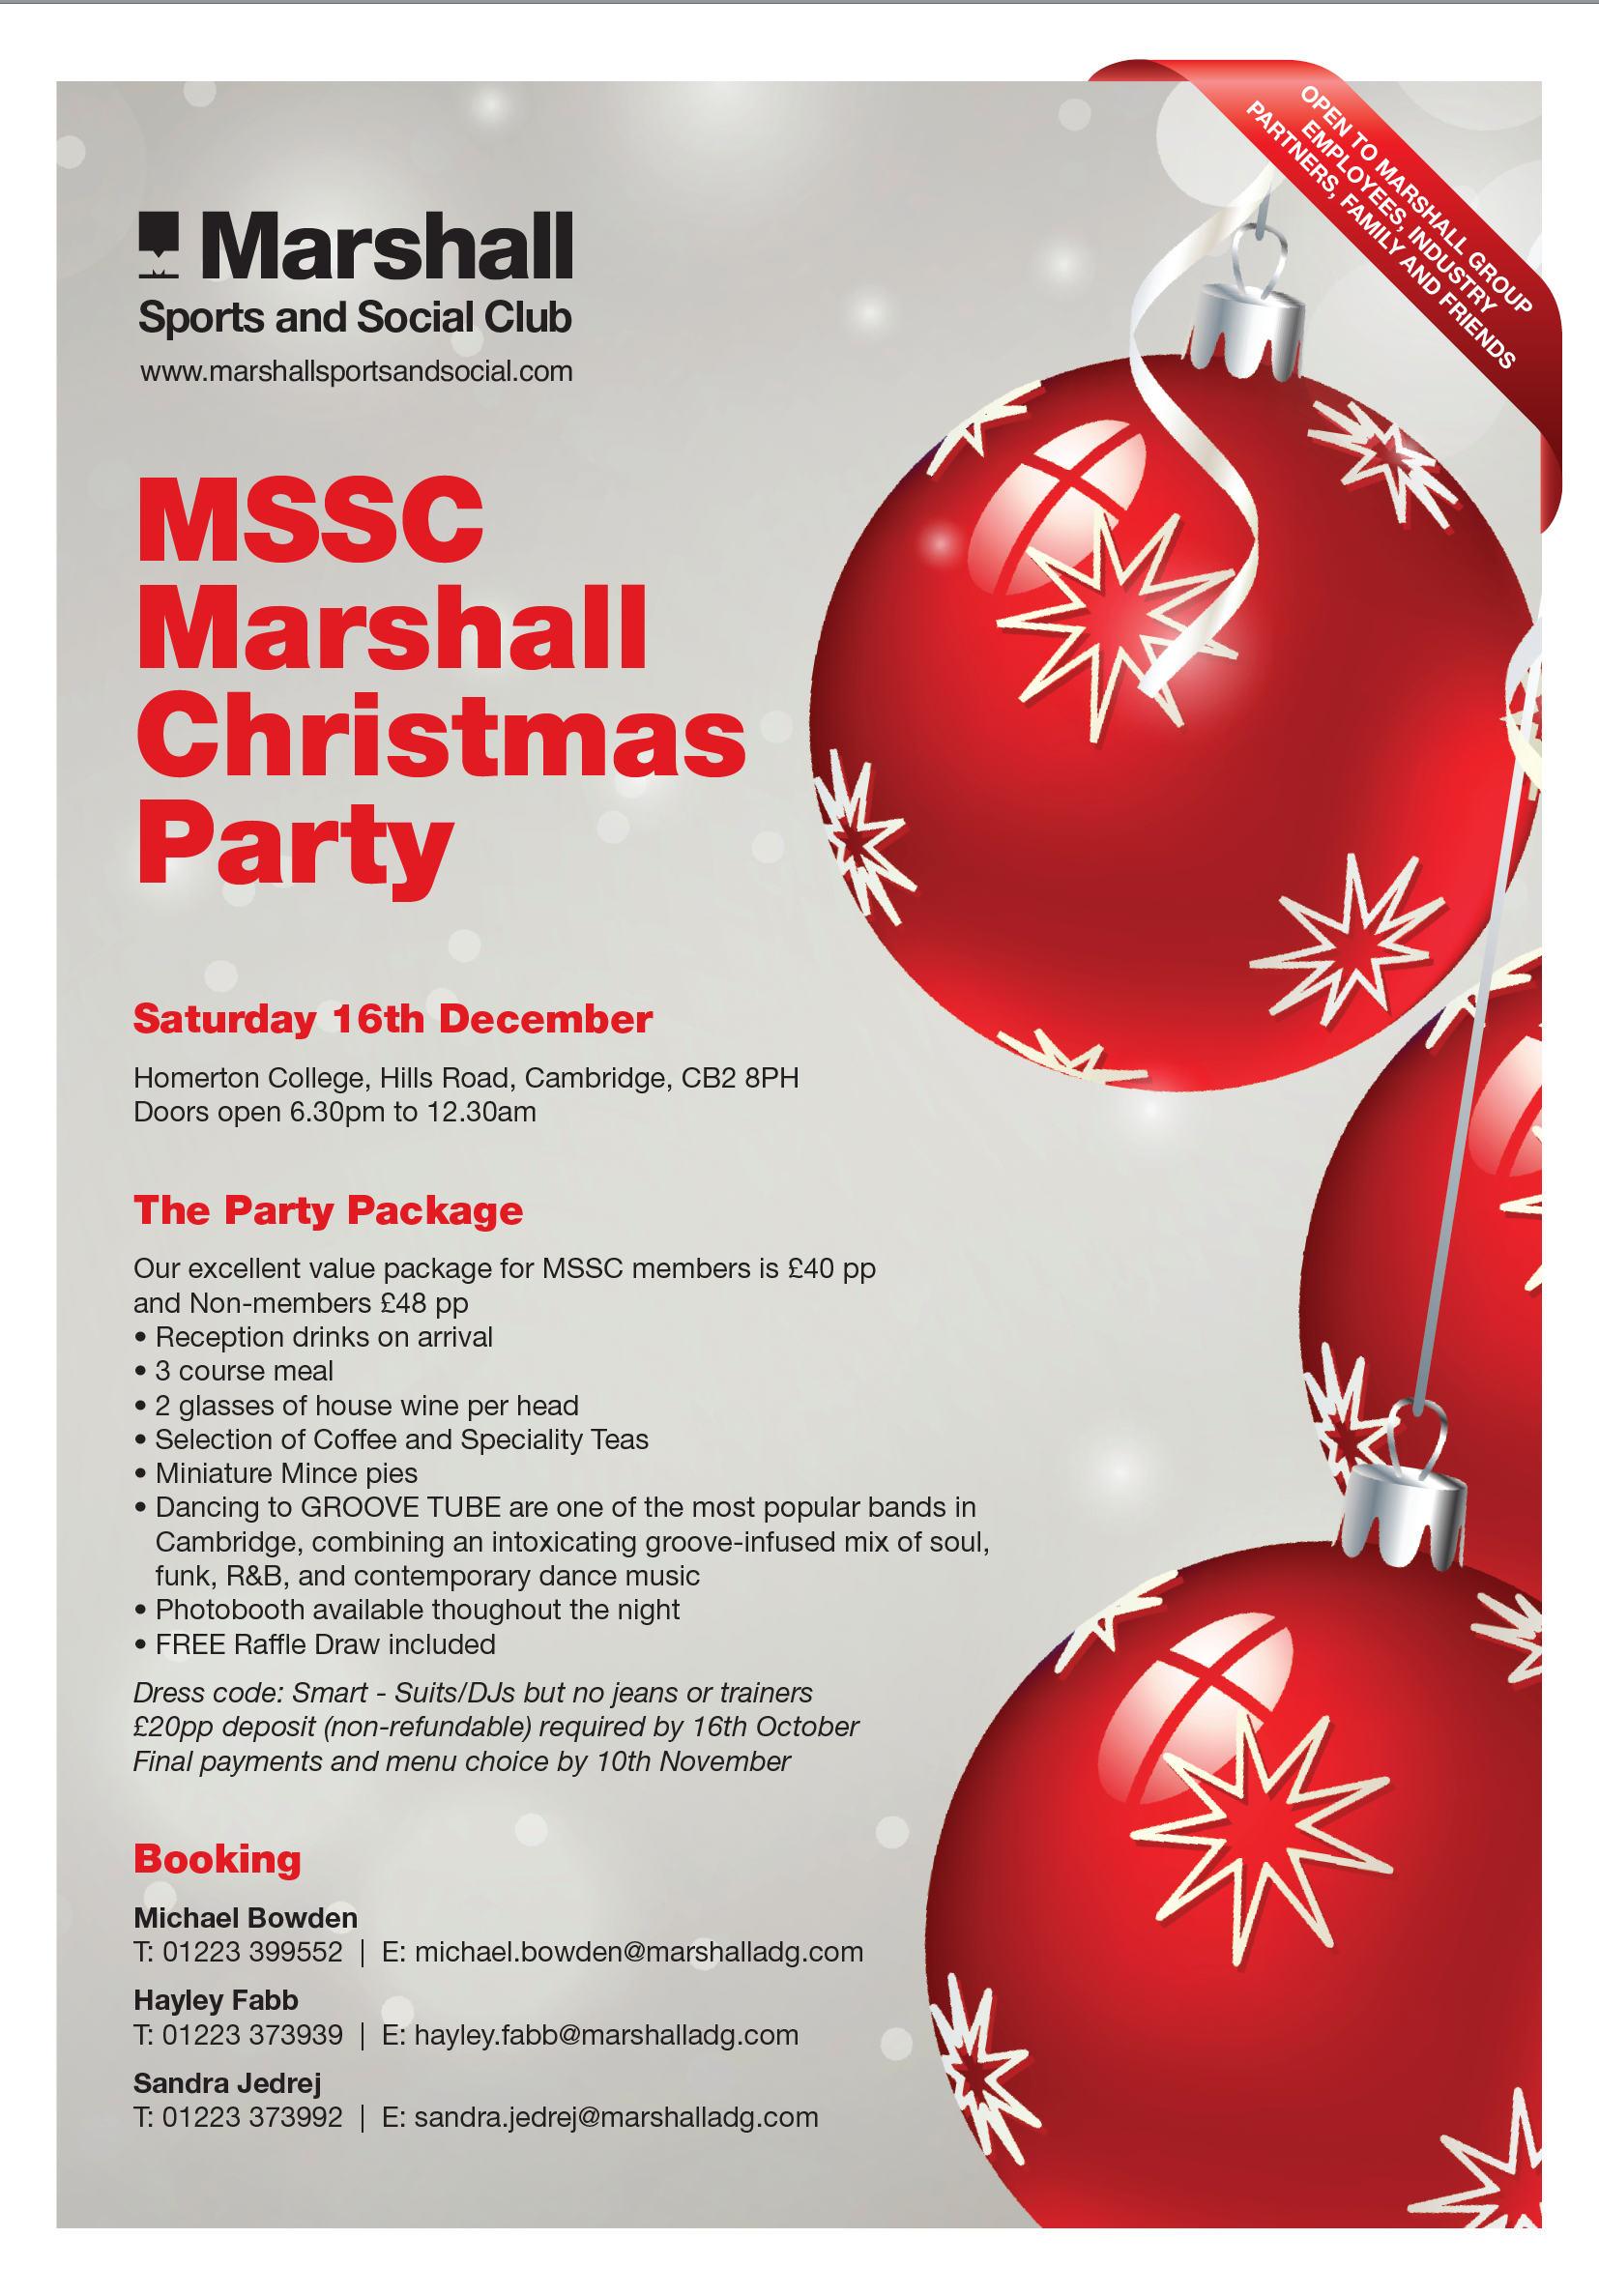 MSSC Christmas Party - Marshall Sports and Social Club